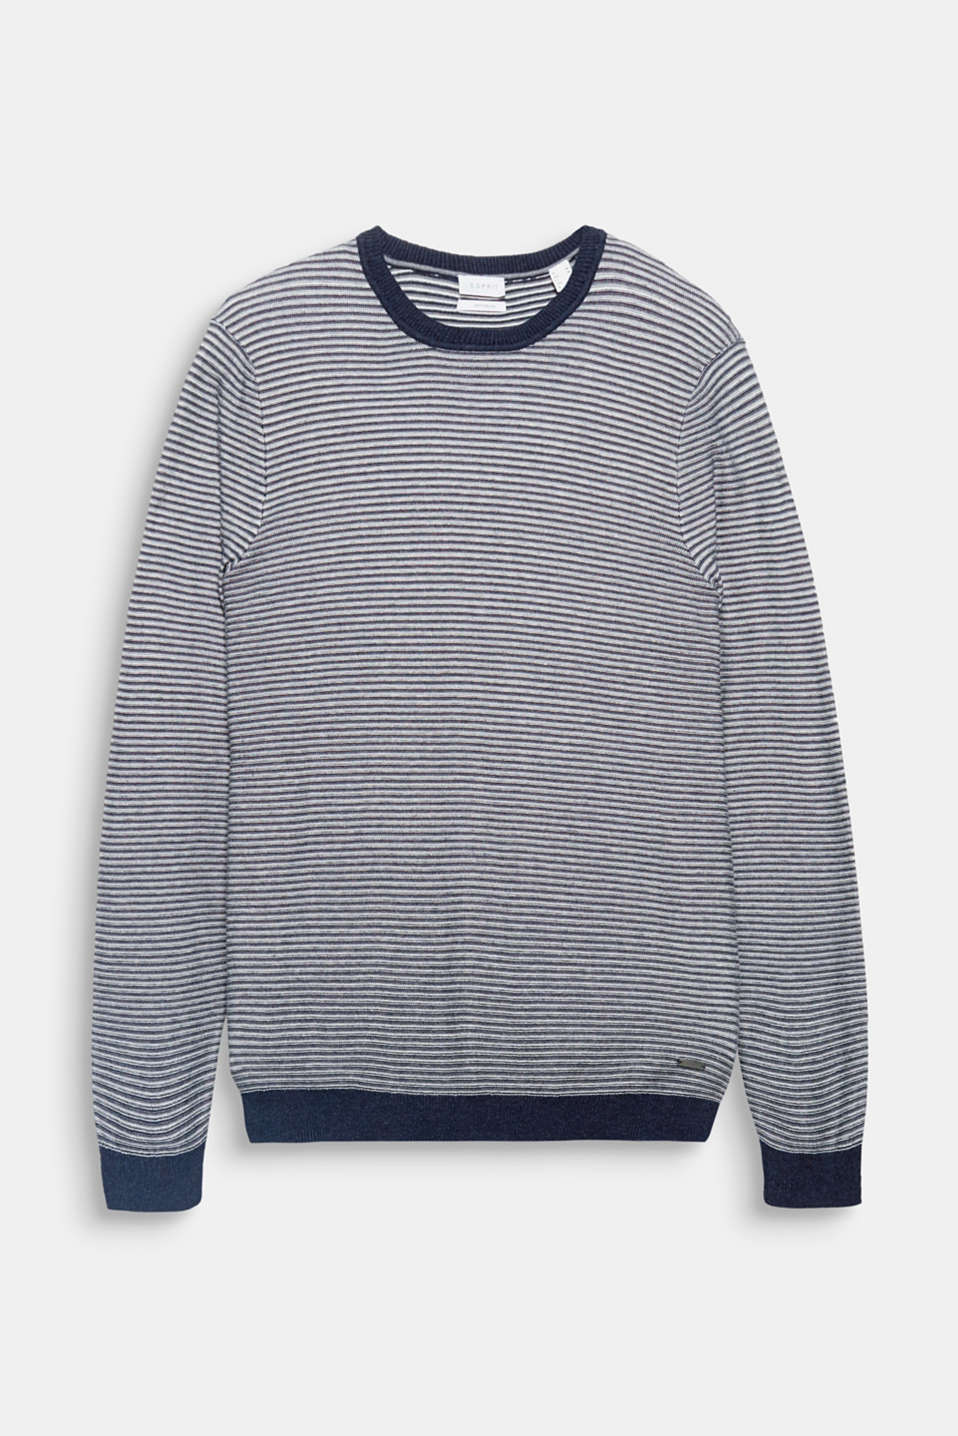 The fine knit and dainty stripes give this jumper in a cotton/silk blend its sporty look.